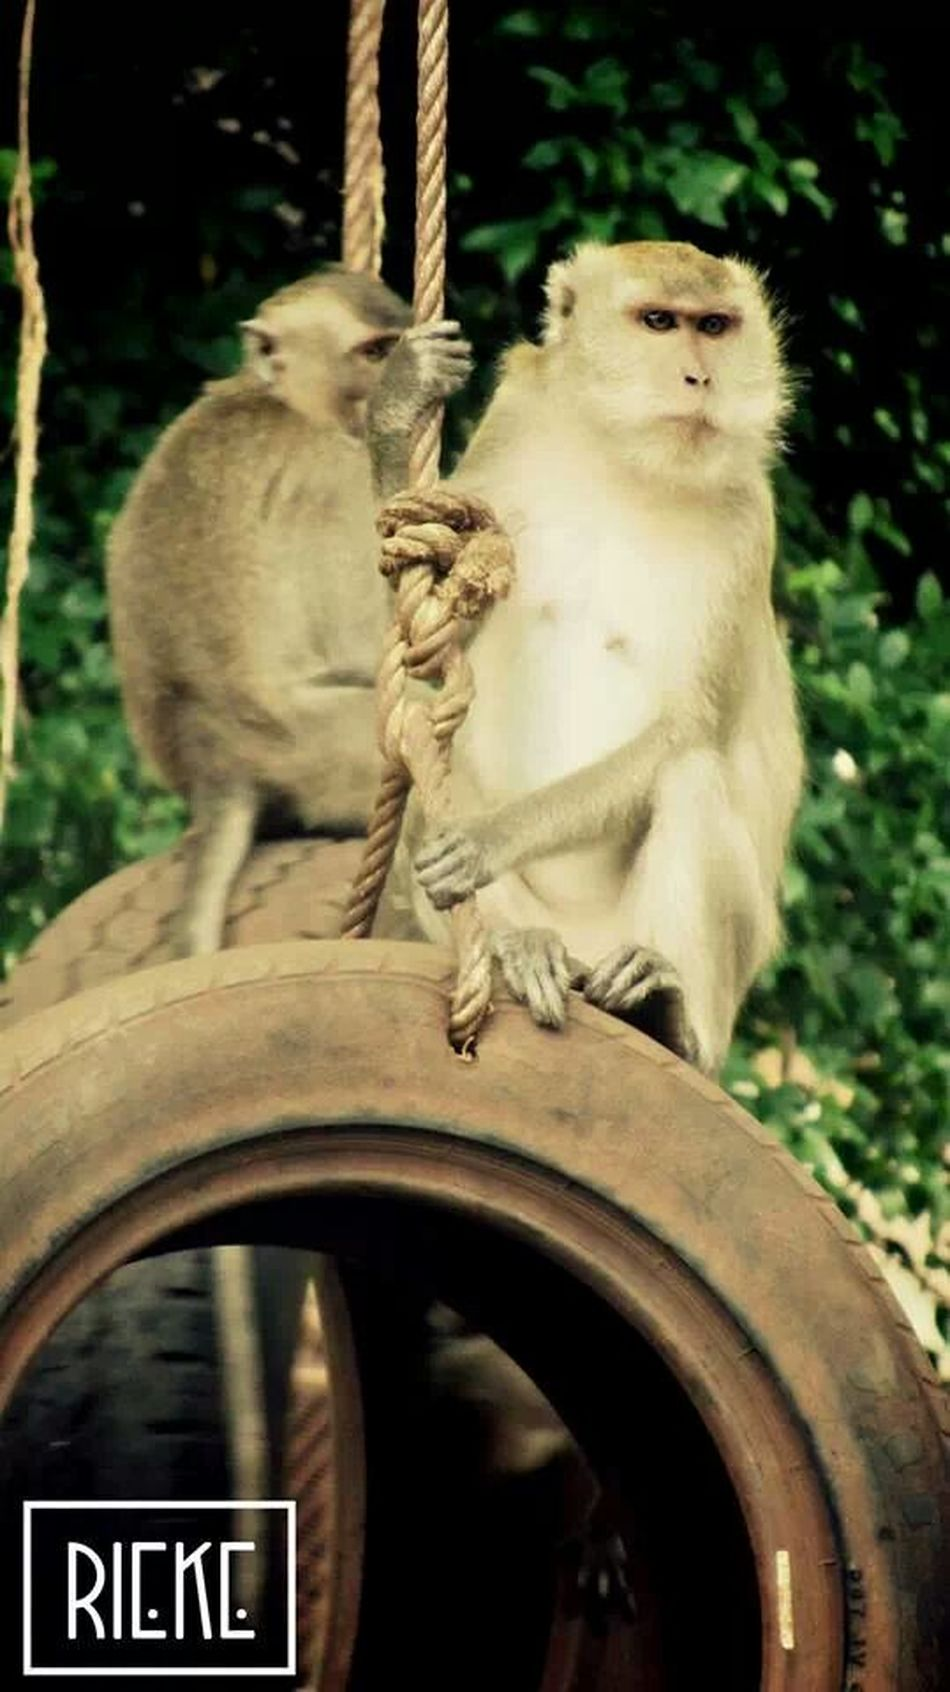 king of the monkeys at tiger cave temple Thailand_allshots EyeEm Animal Lover Animal_collection TravelingAlphaWeAreJuxt.comAmpt_collectionShootermagAnimals